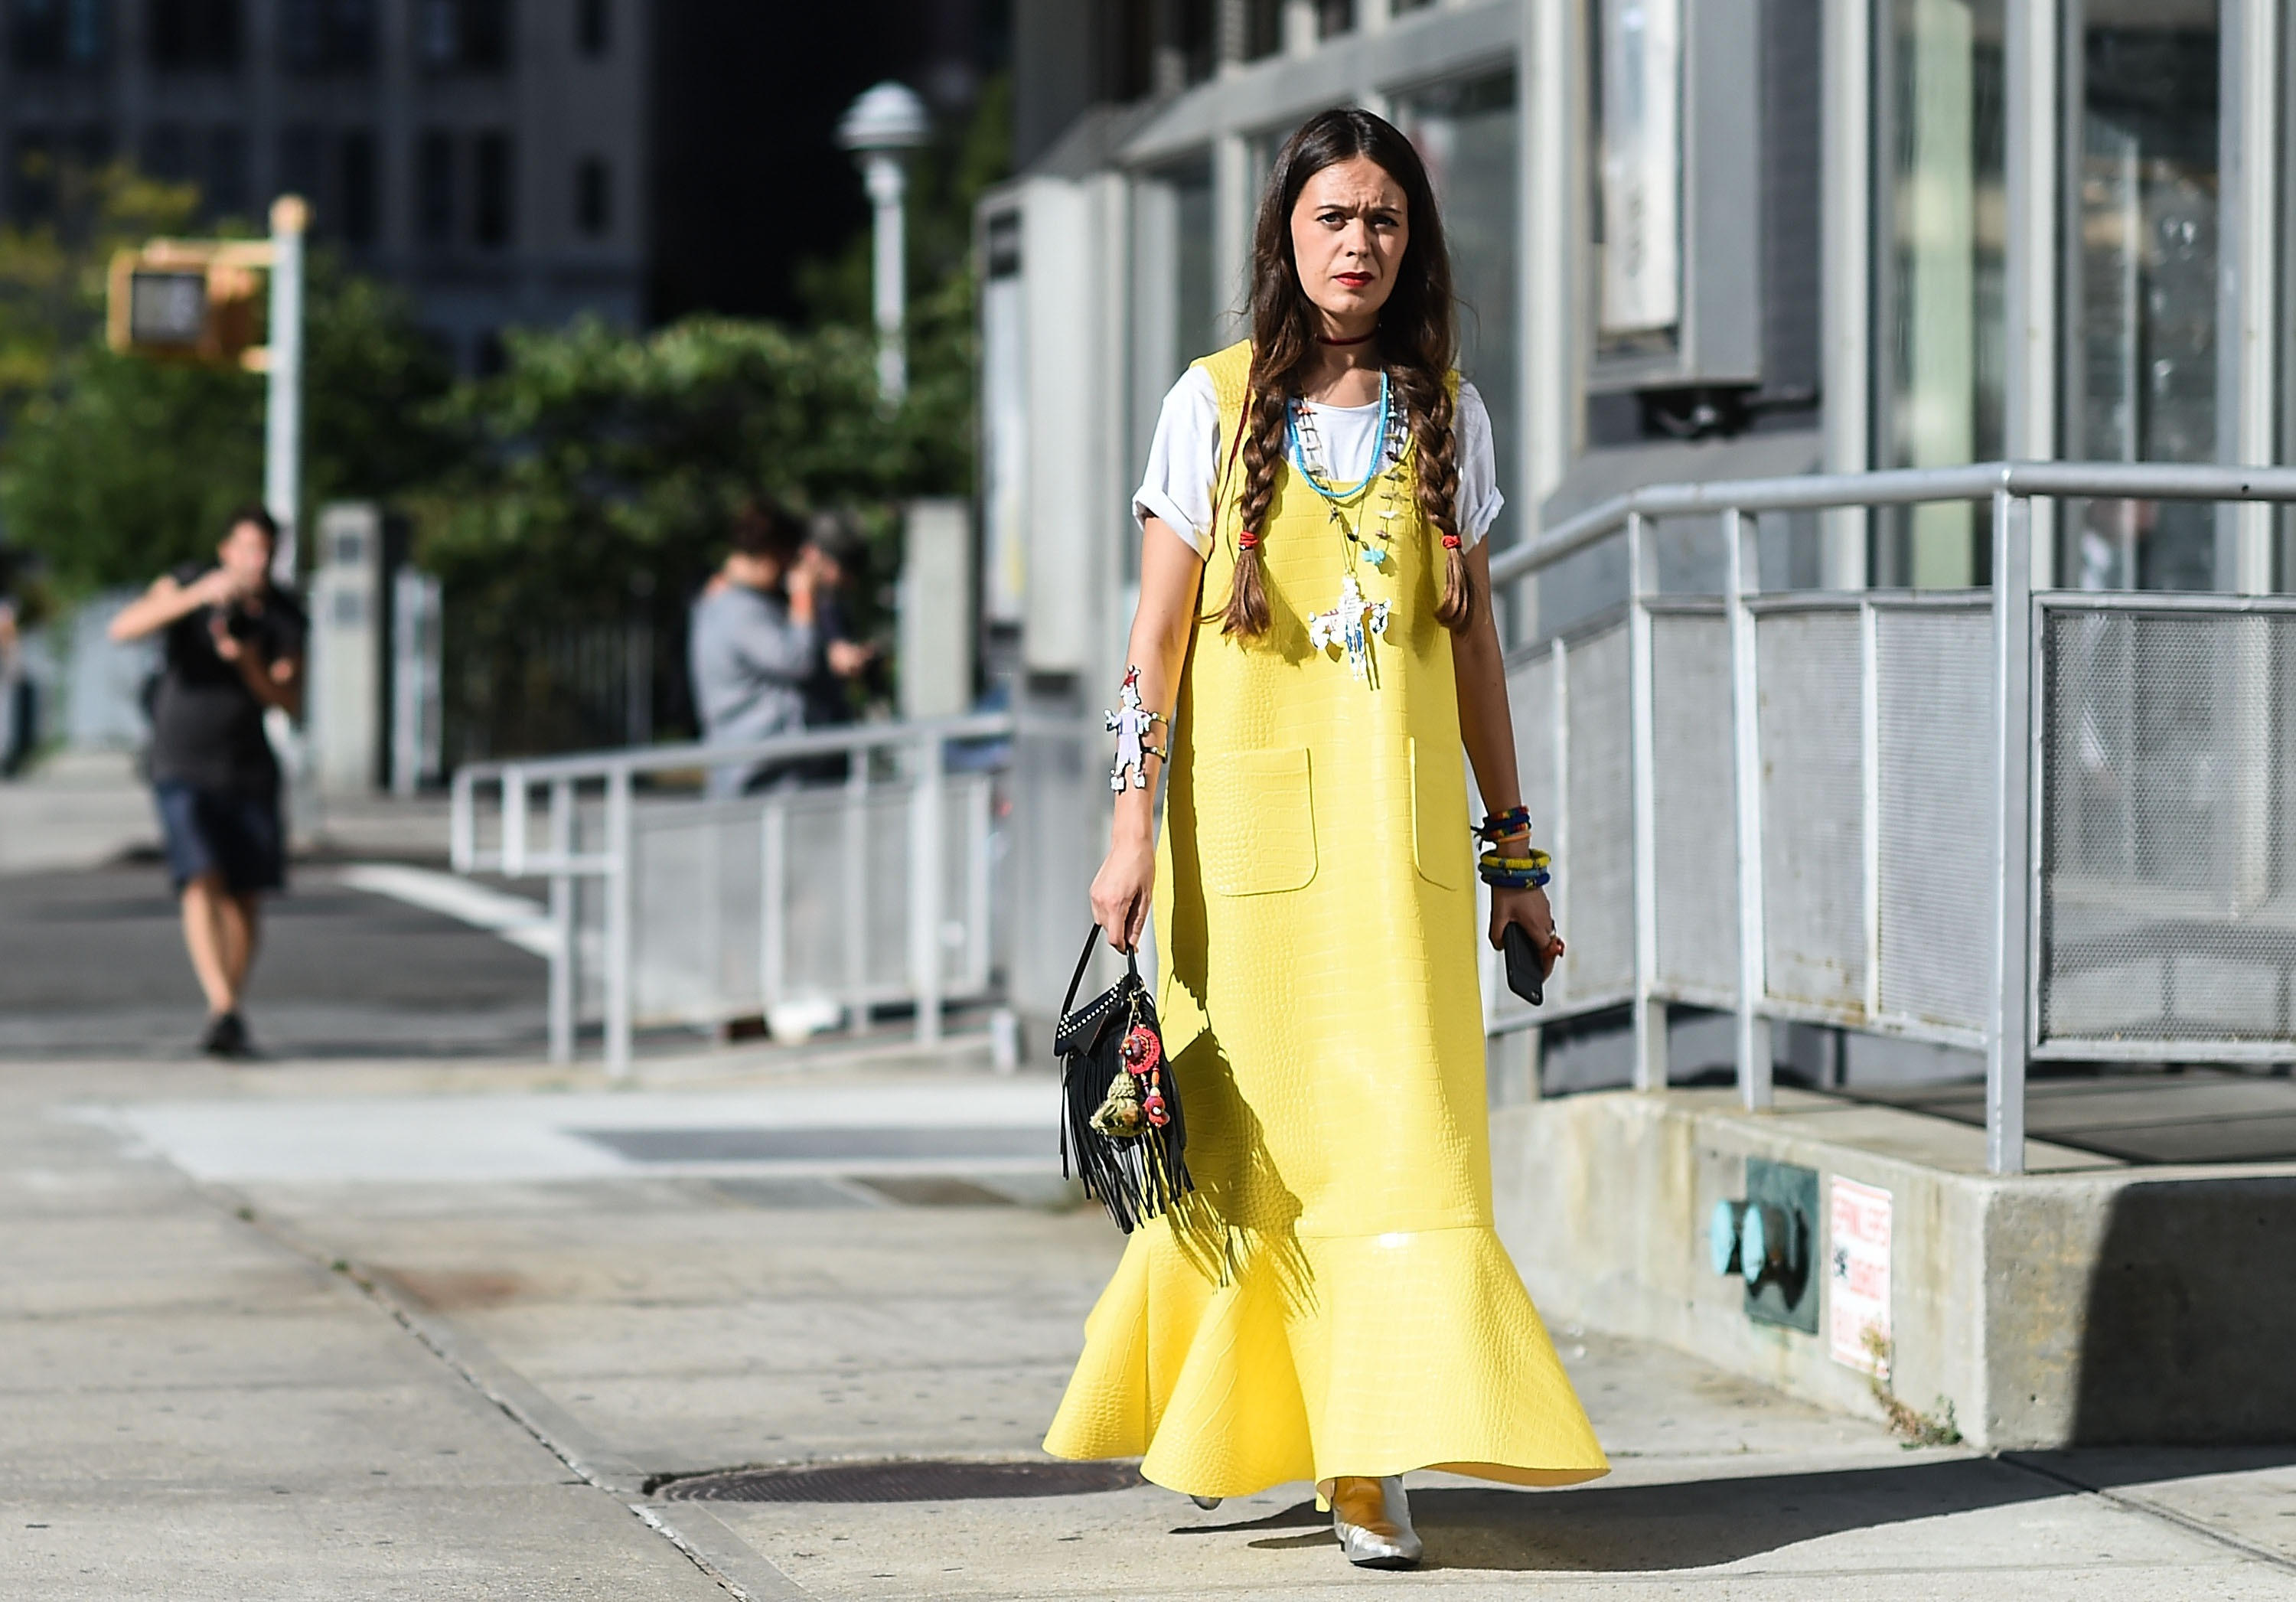 Layering shirts with dresses: This season brought the return of the shirt-dress combo. Give the beloved '90s look an update by pairing a crisp white tee with a dress in this season's whimsical shades and prints.